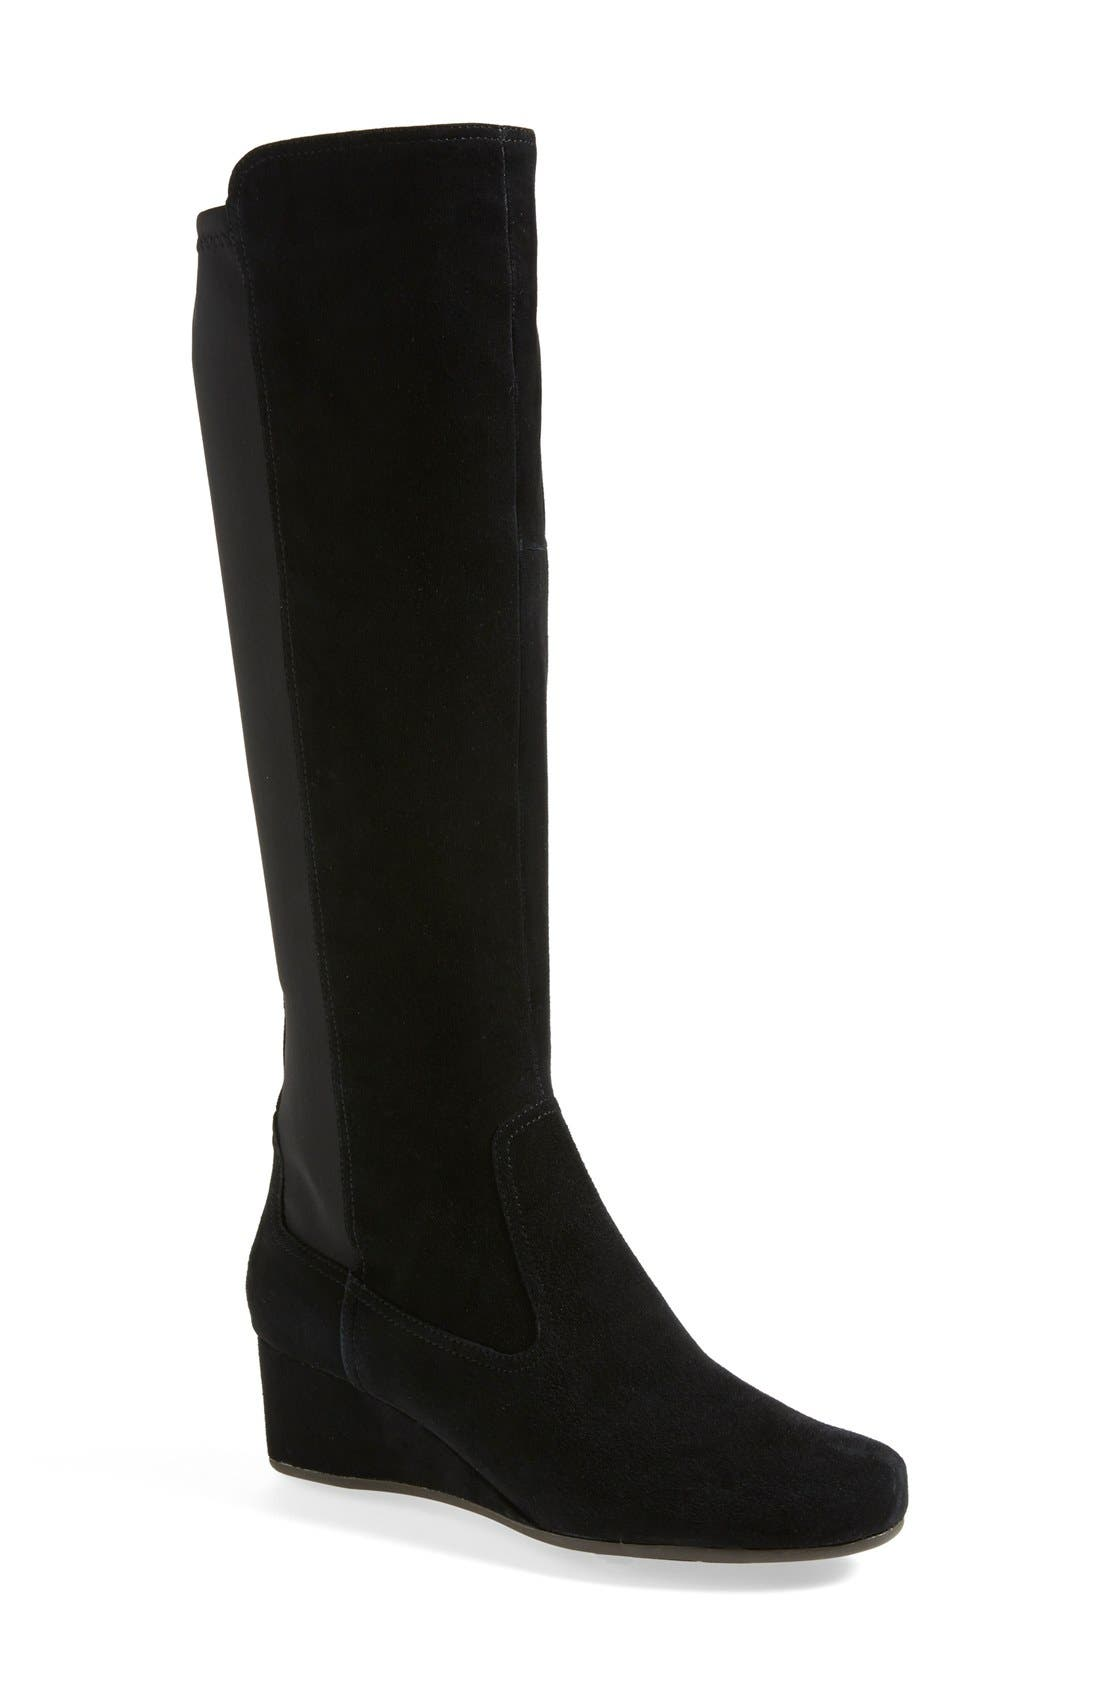 Alternate Image 1 Selected - Rockport 'Total Motion' Suede Boot (Wide Calf) (Women)